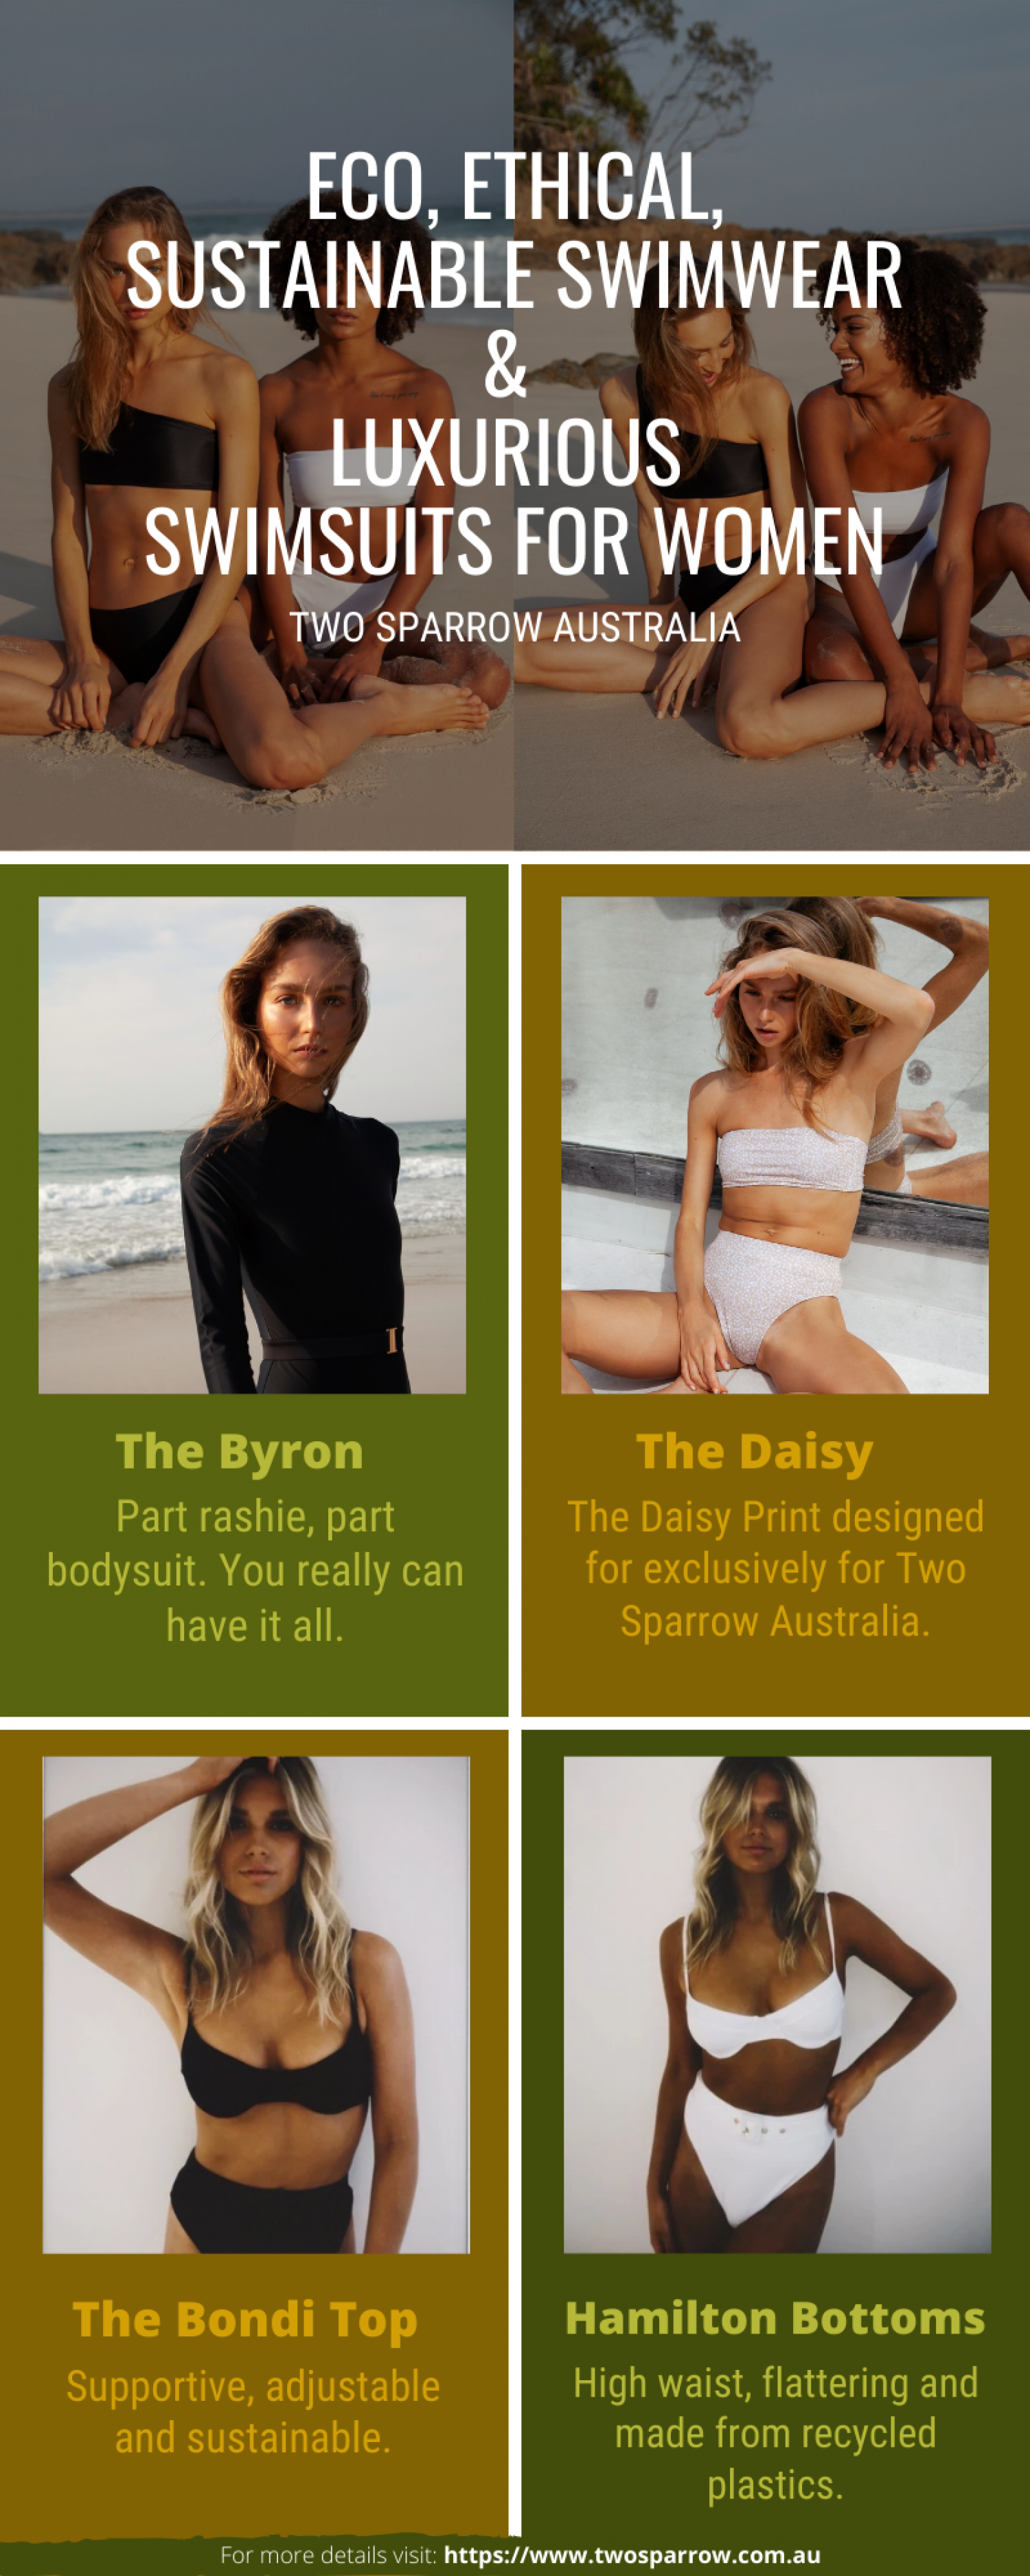 Eco, Ethical, Sustainable Swimwear & Luxurious Swimsuits for Women Infographic